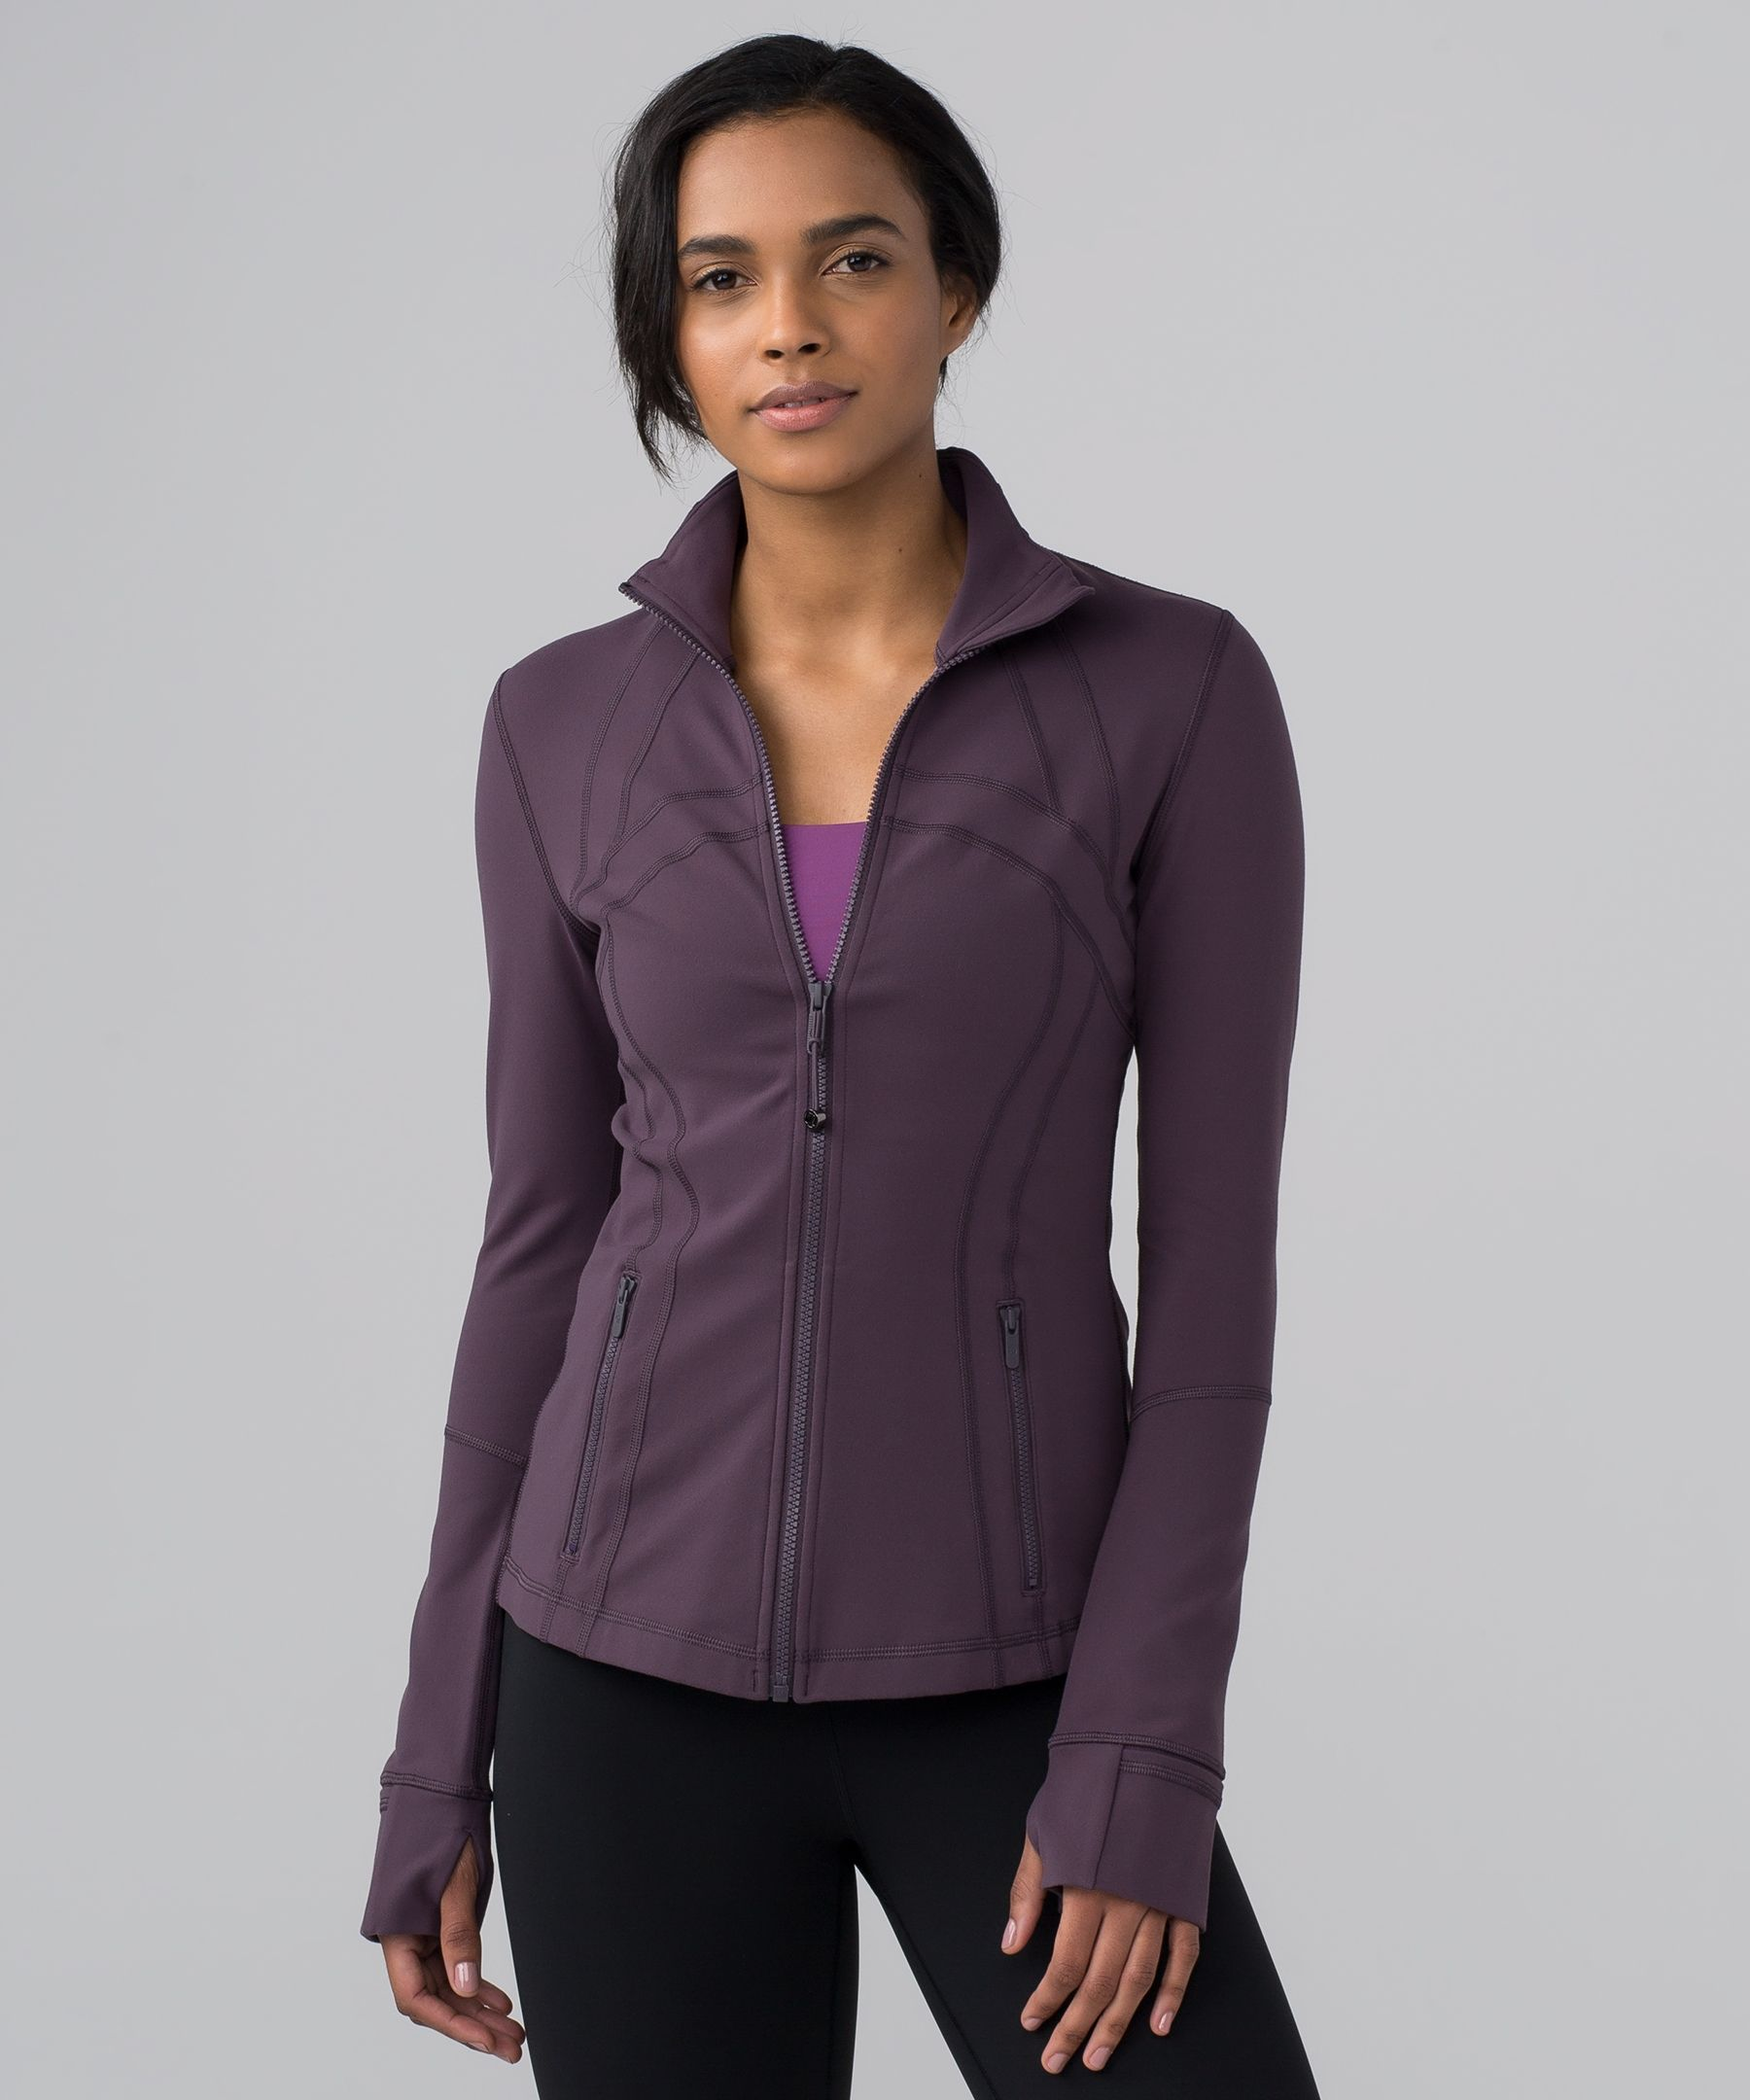 Layer on this warm, lightweight jacket before you hit the